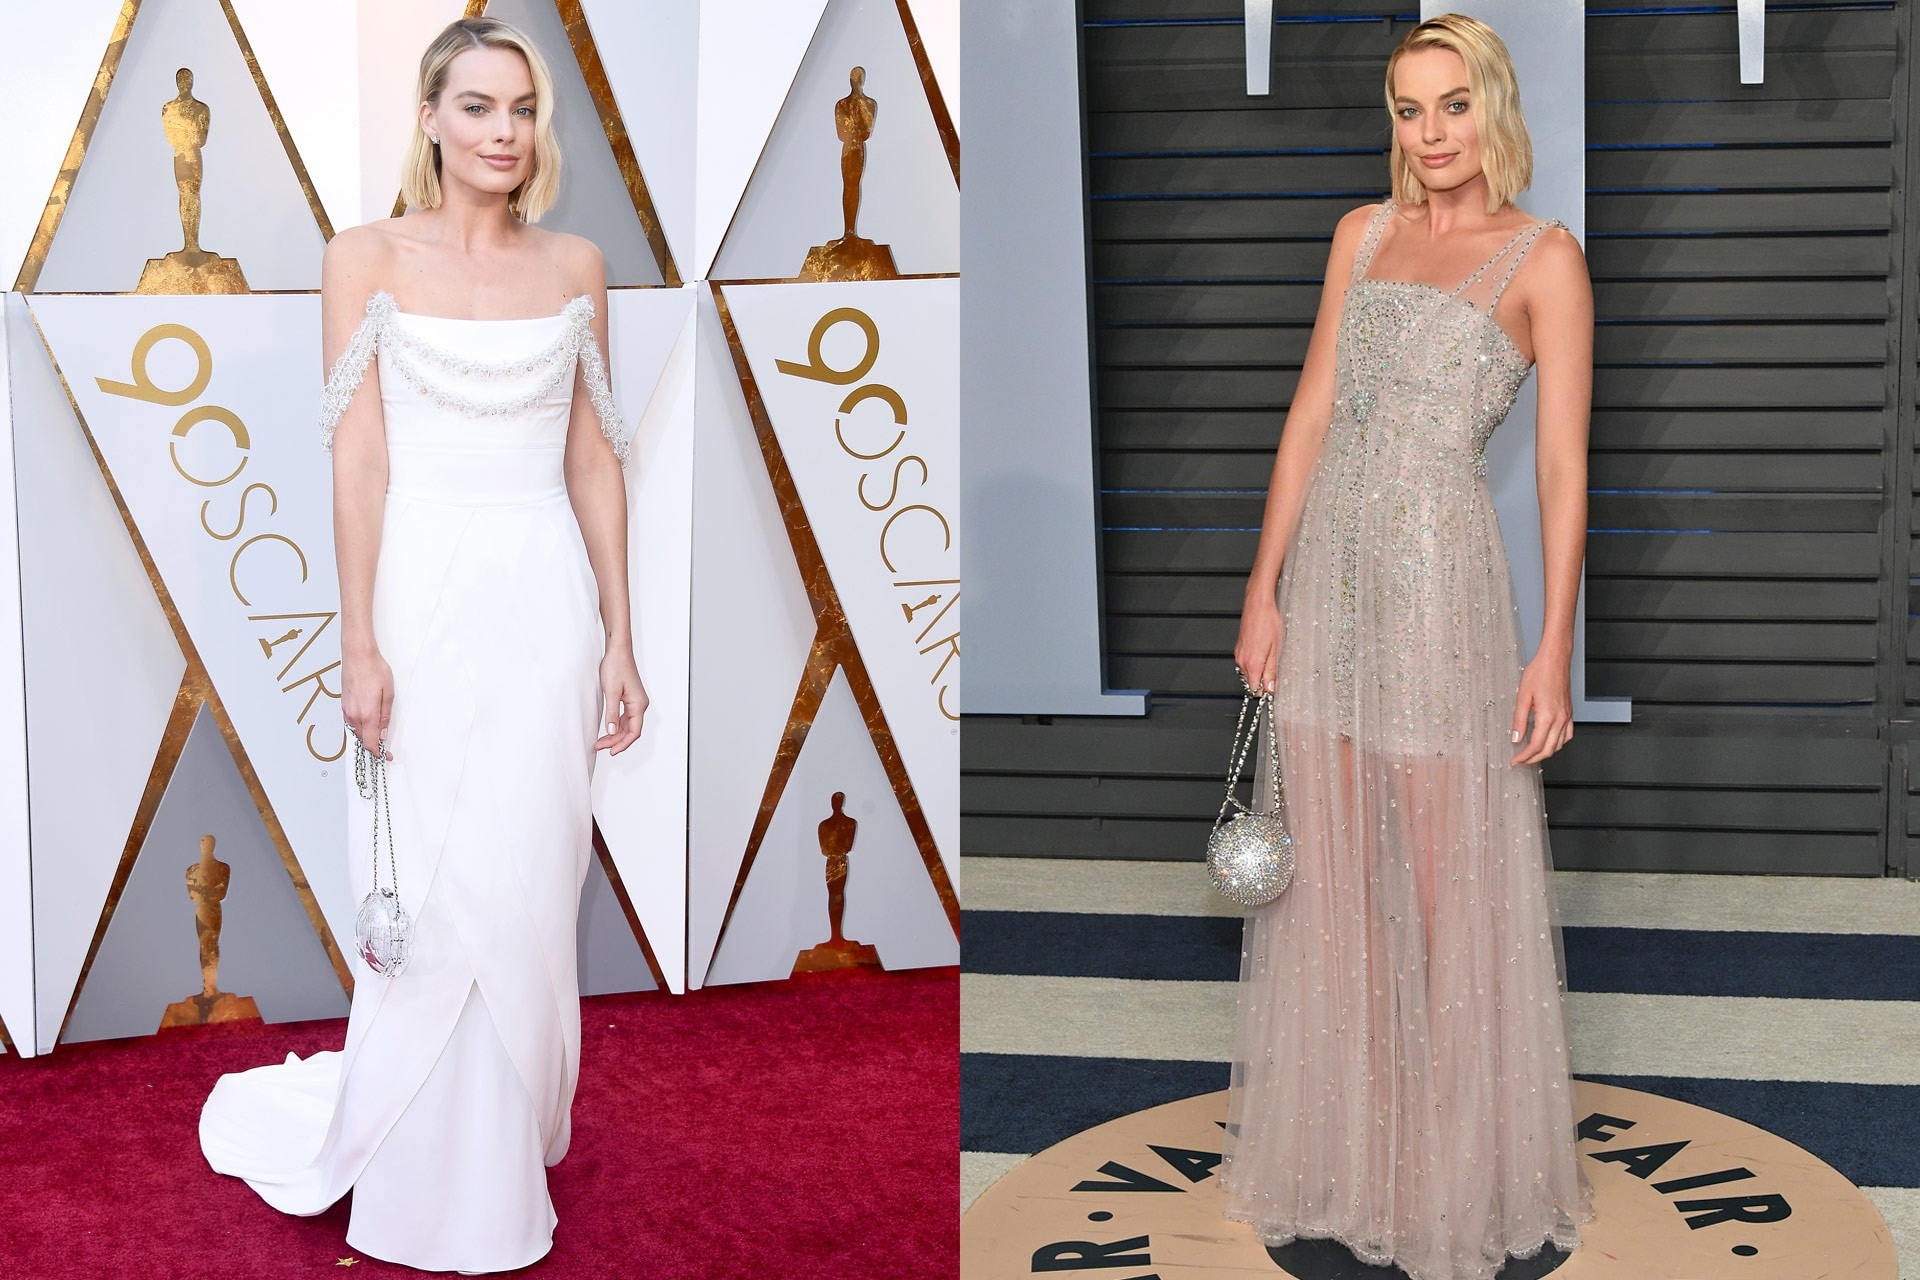 The best outfit changes from the Oscars to the Vanity Fair after party